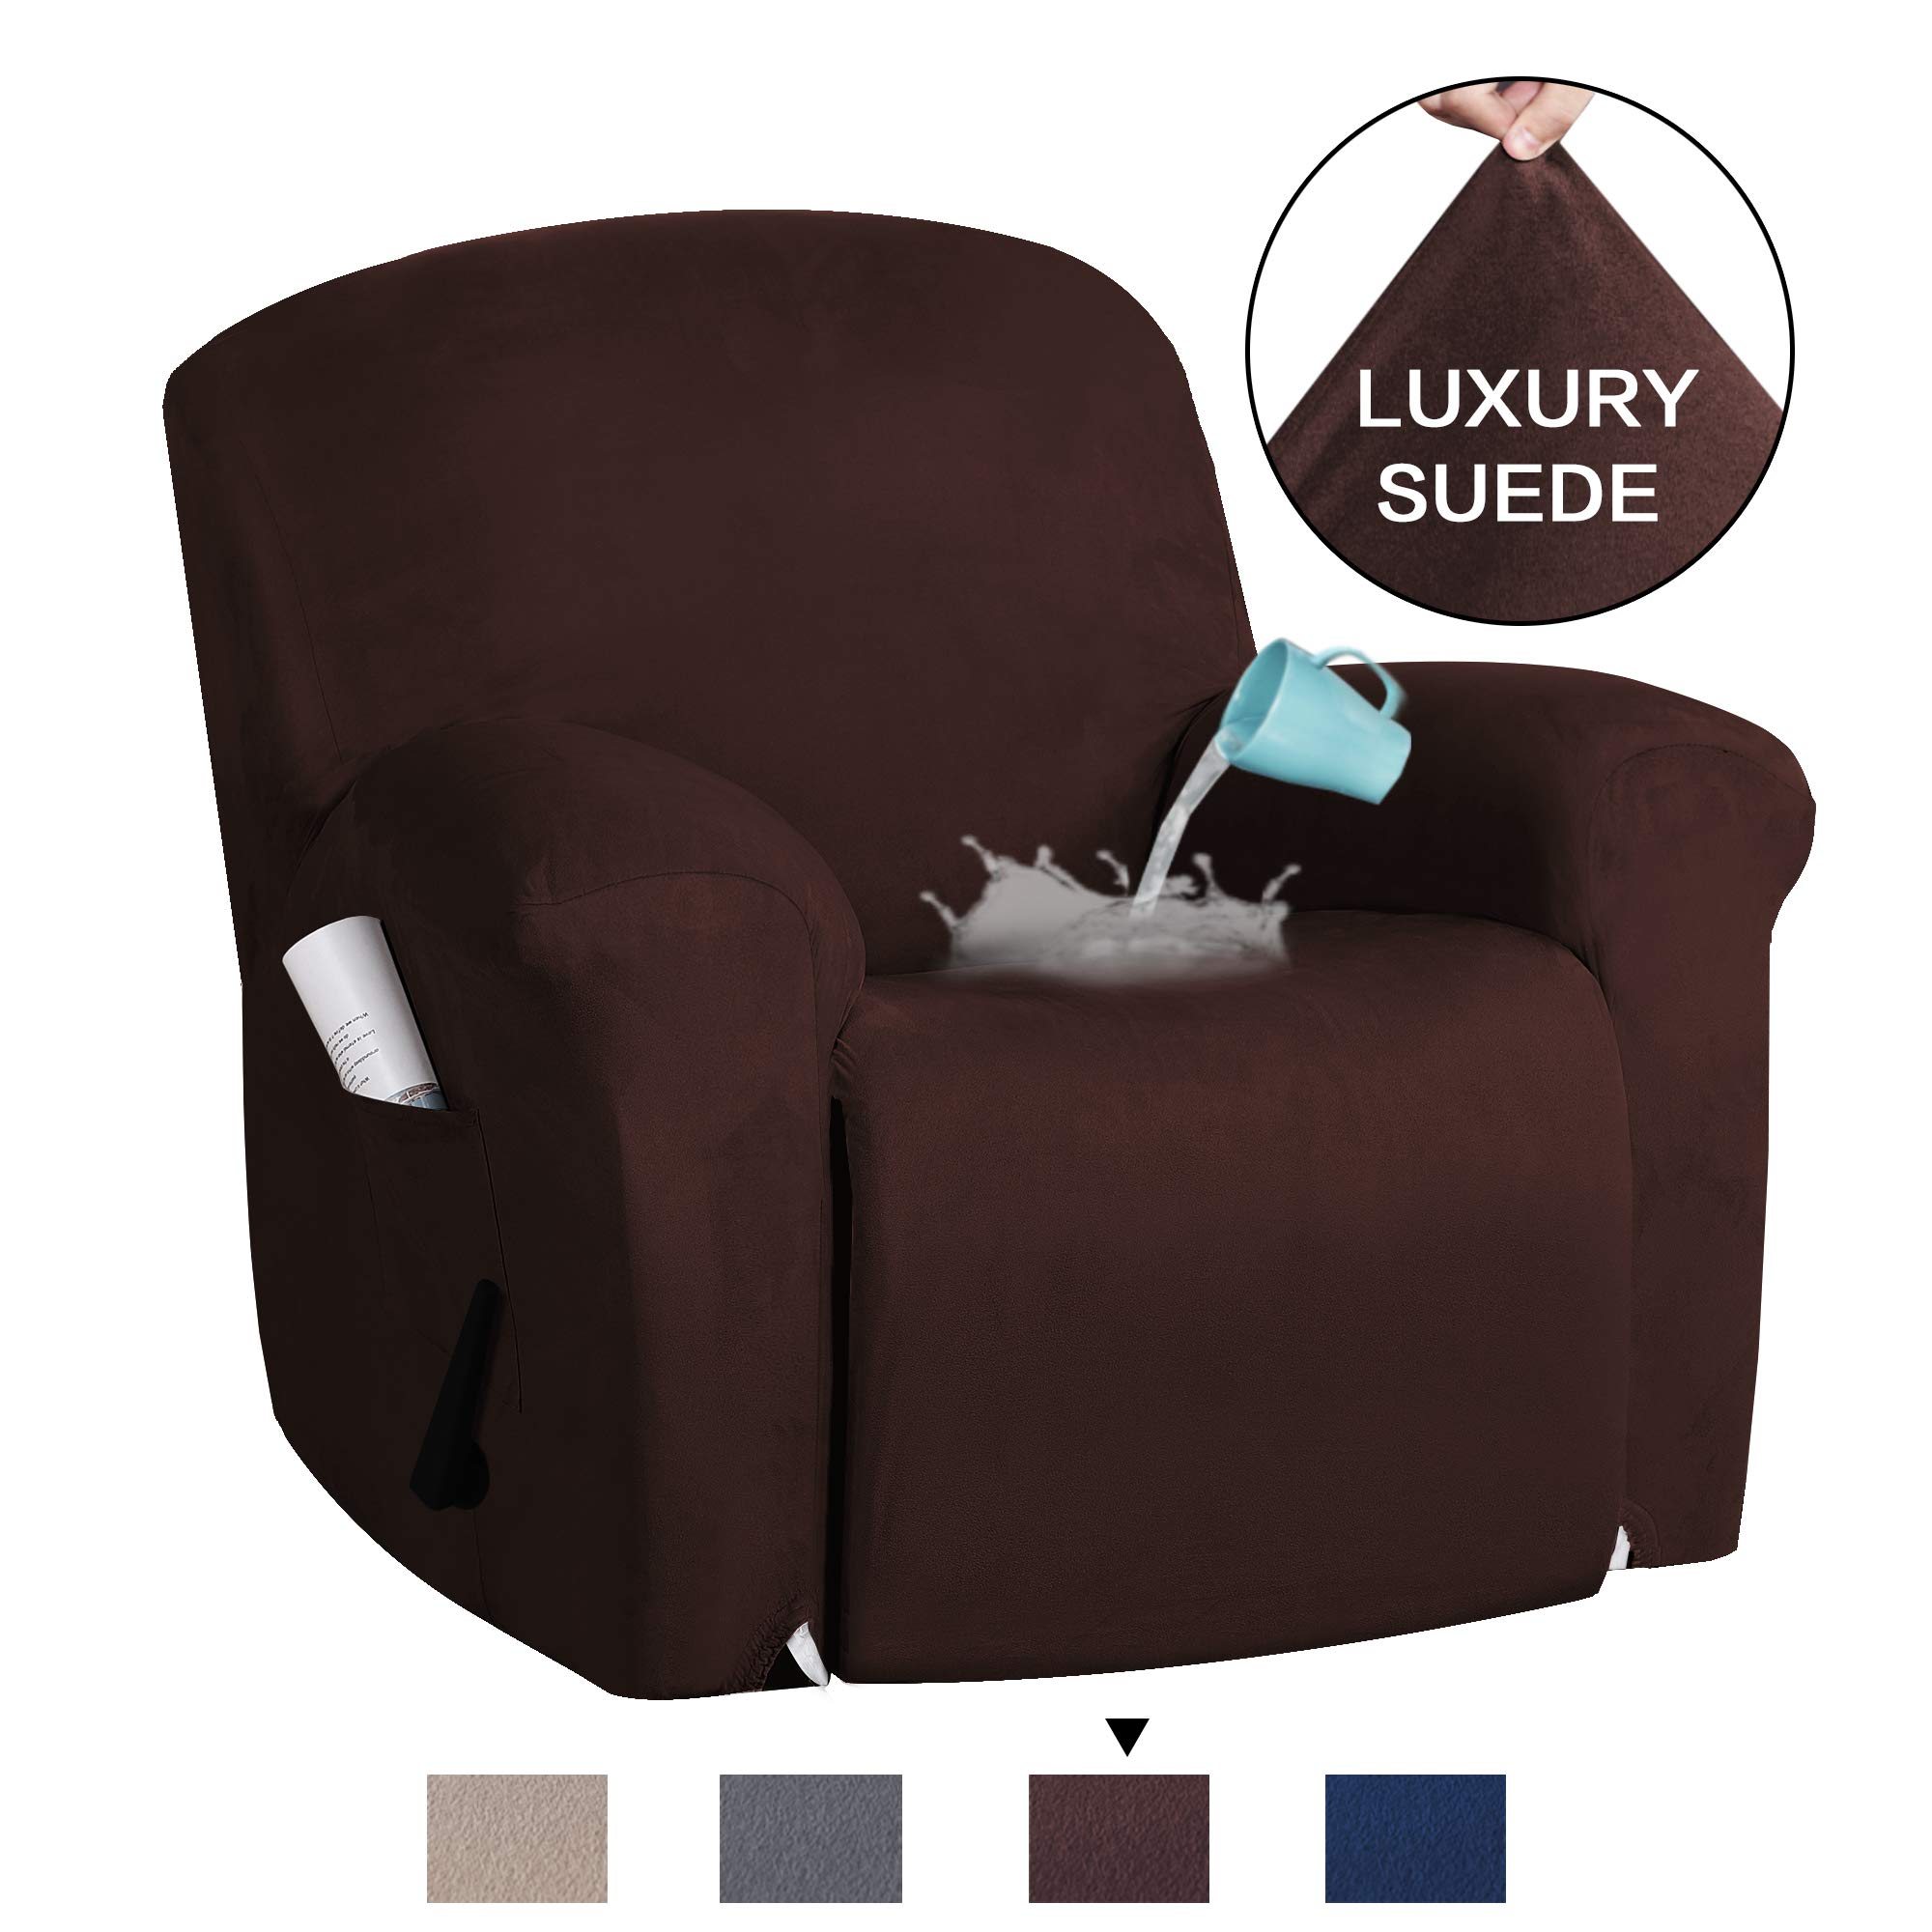 H.VERSAILTEX Recliner Chair Cover Velvet Suede Sofa Cover 1-Piece Recliner Covers for Large Recliner, Sofa Covers, Furniture Protector with Elastic Bottom, Anti-Slip Foams Attached (Recliner, Brown)